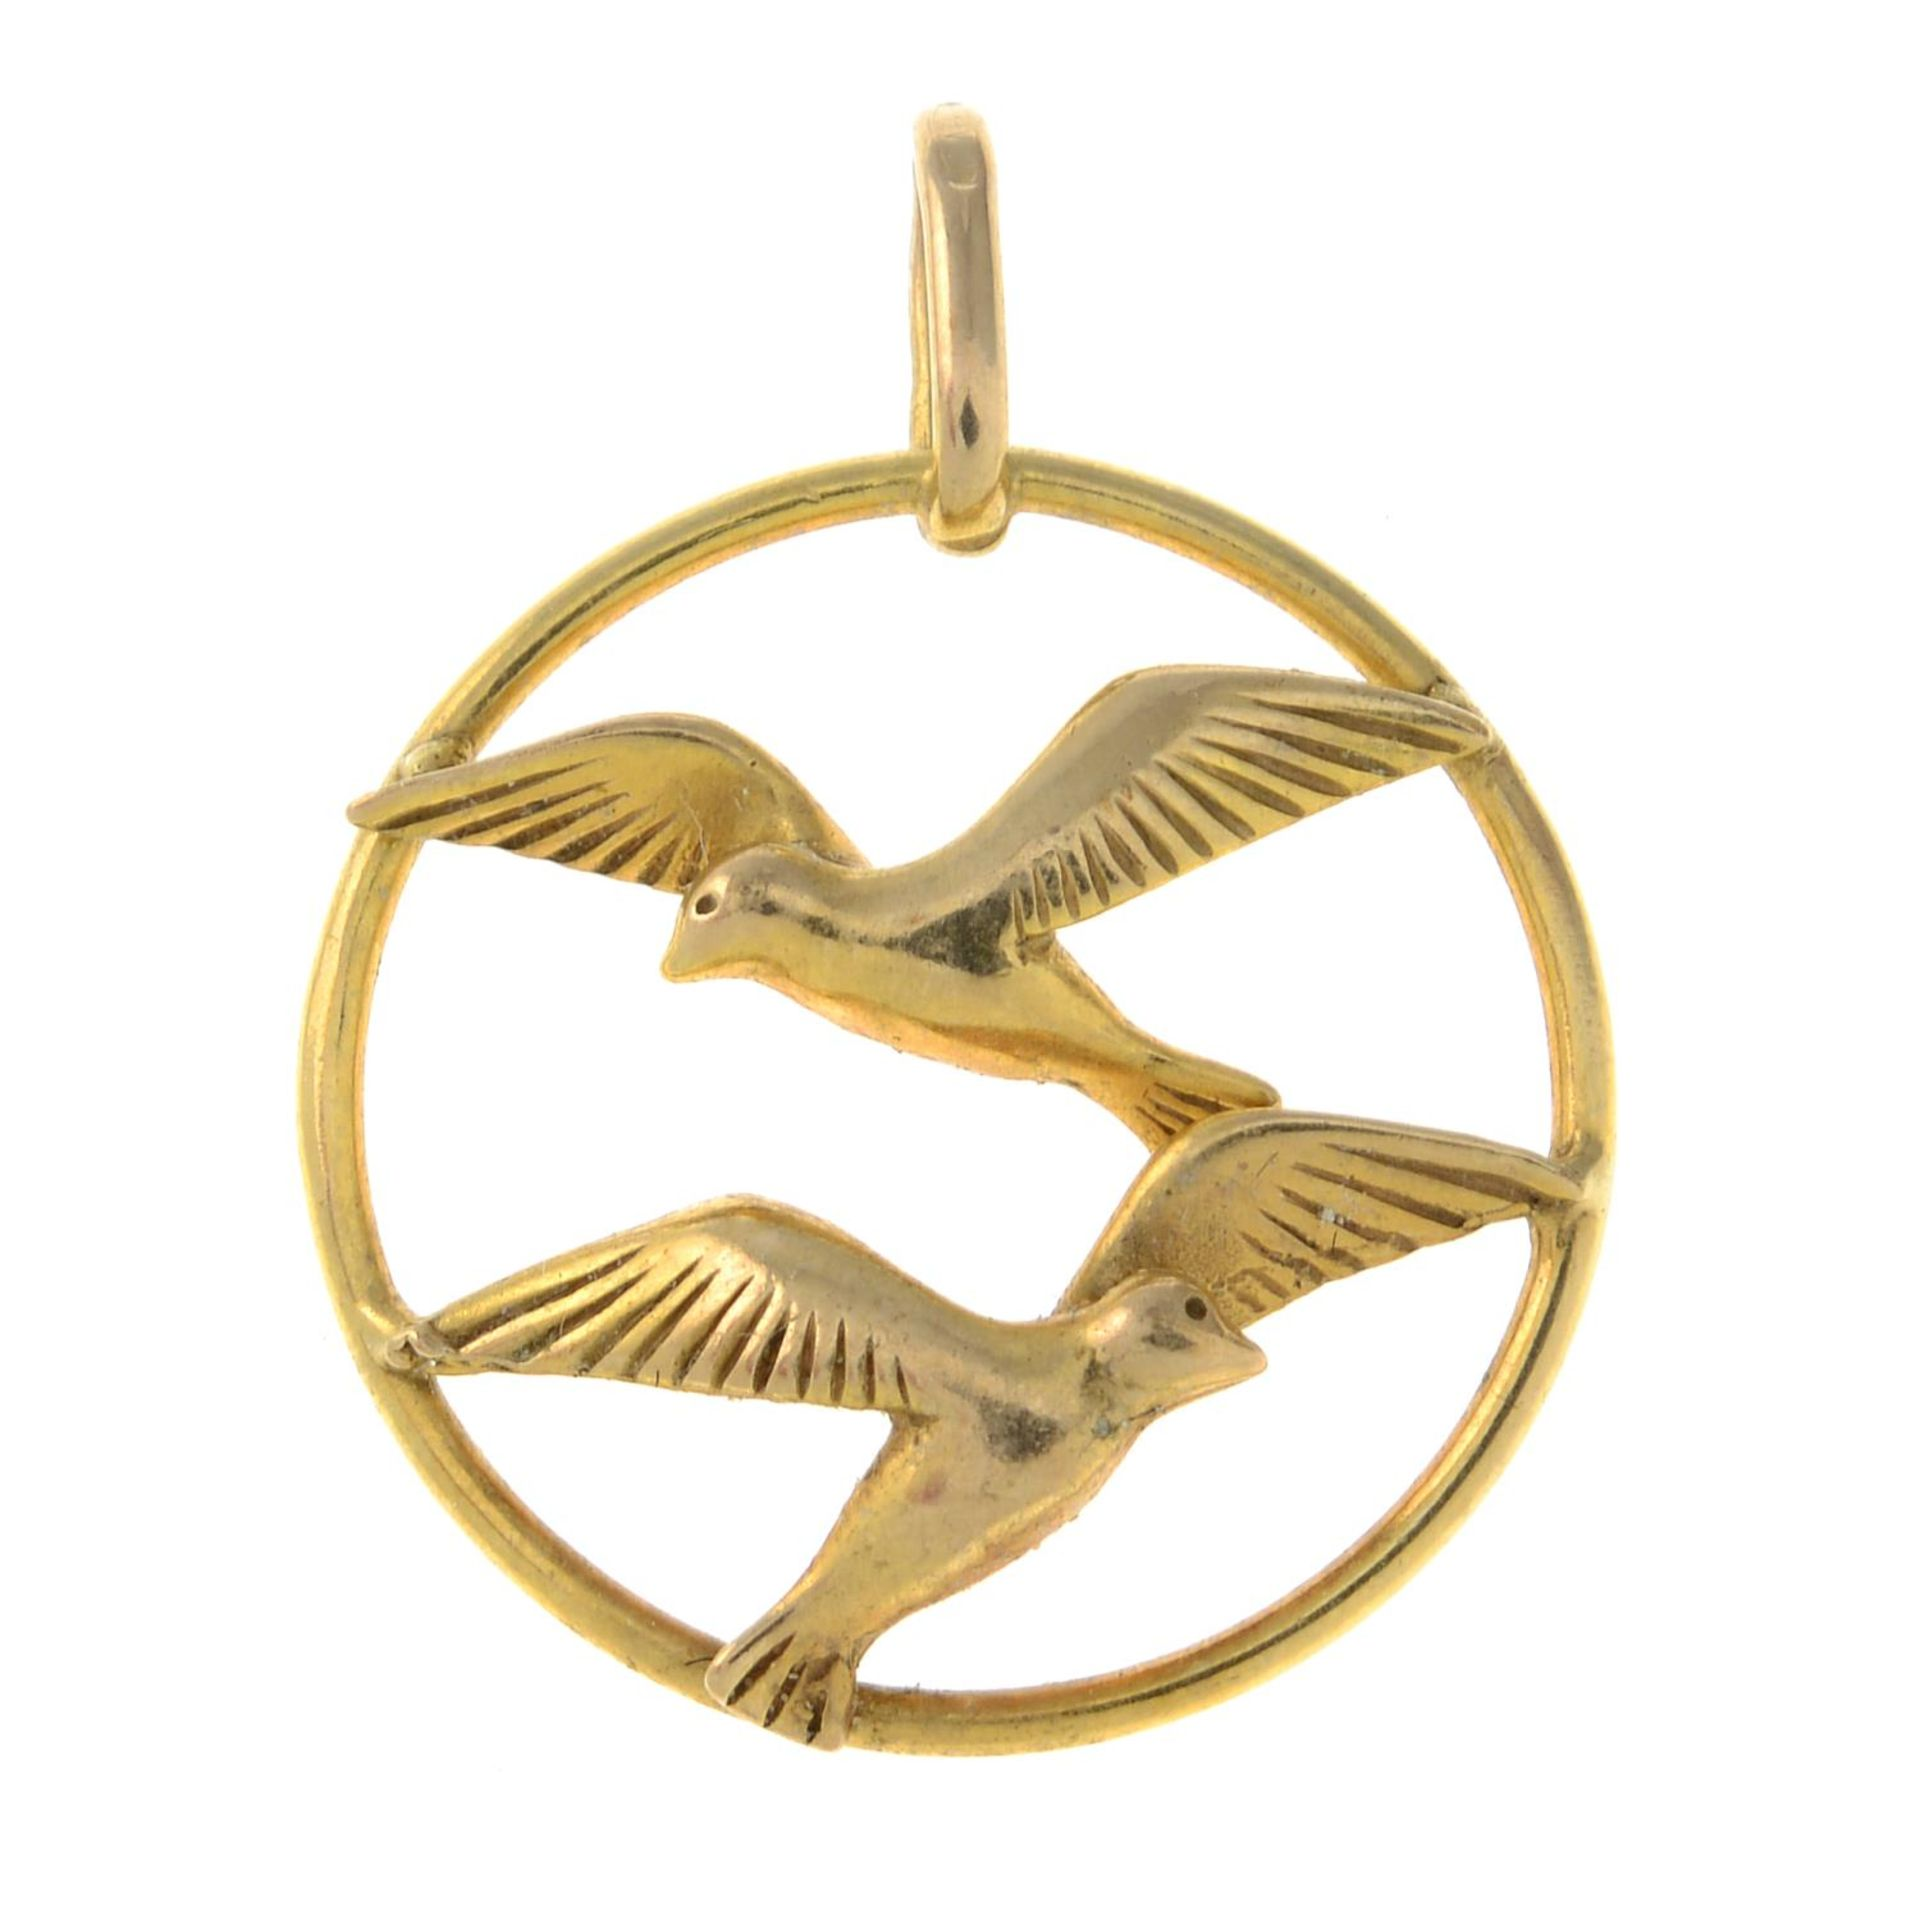 A 9ct gold openwork pendant, designed to depict two birds in flight.Import marks for 9ct gold.